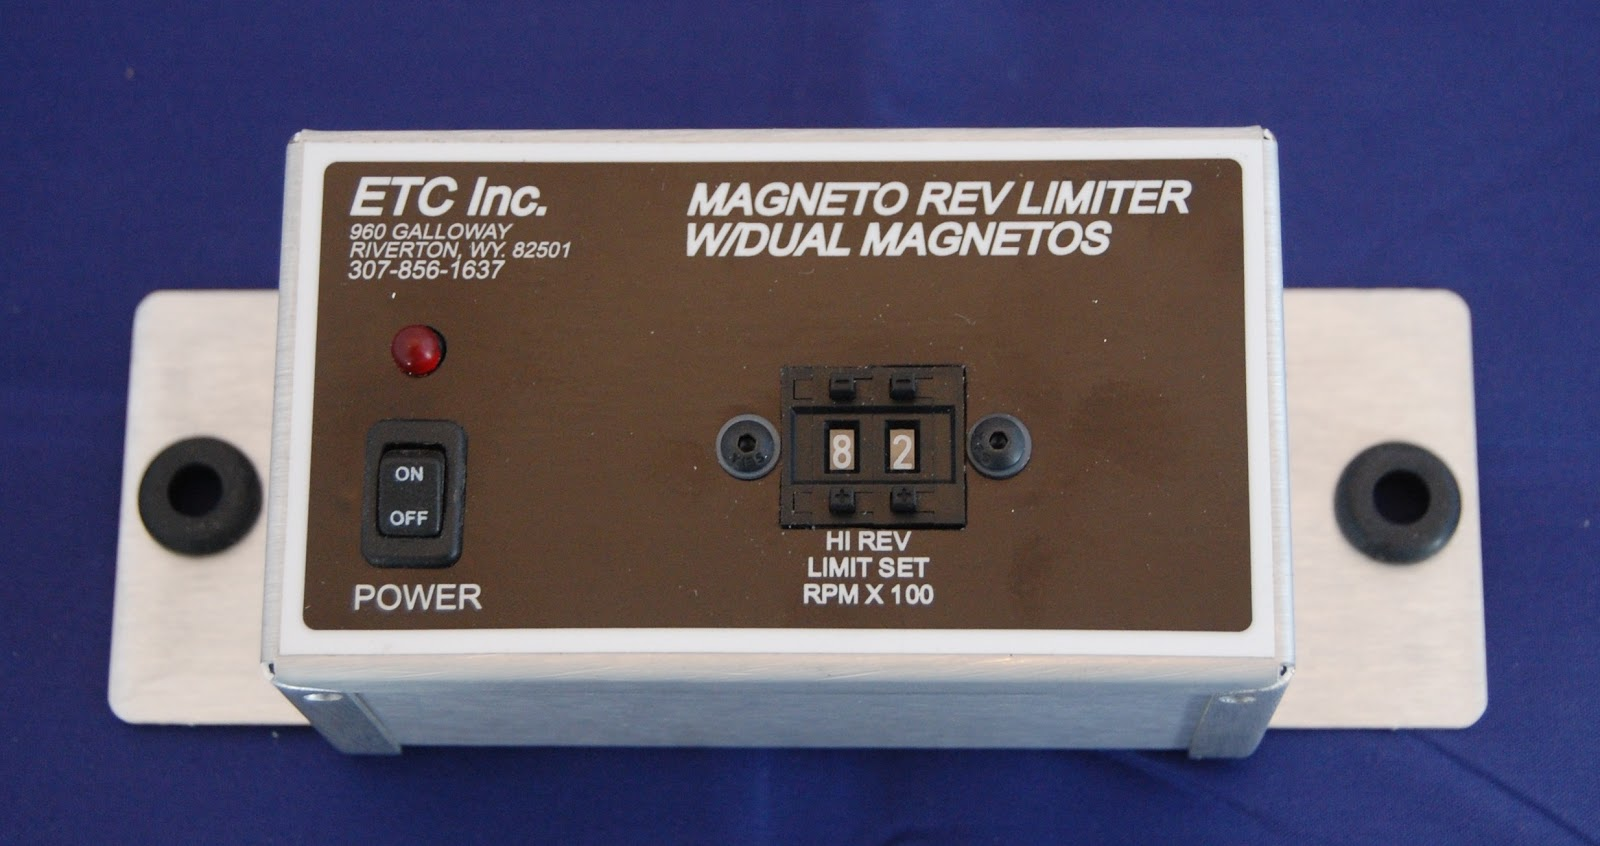 mallory high fire wiring diagram with rev limiter mallory 6a ignition wiring diagram etc rev limiters: high-range rev limiter (12 volts) with ...